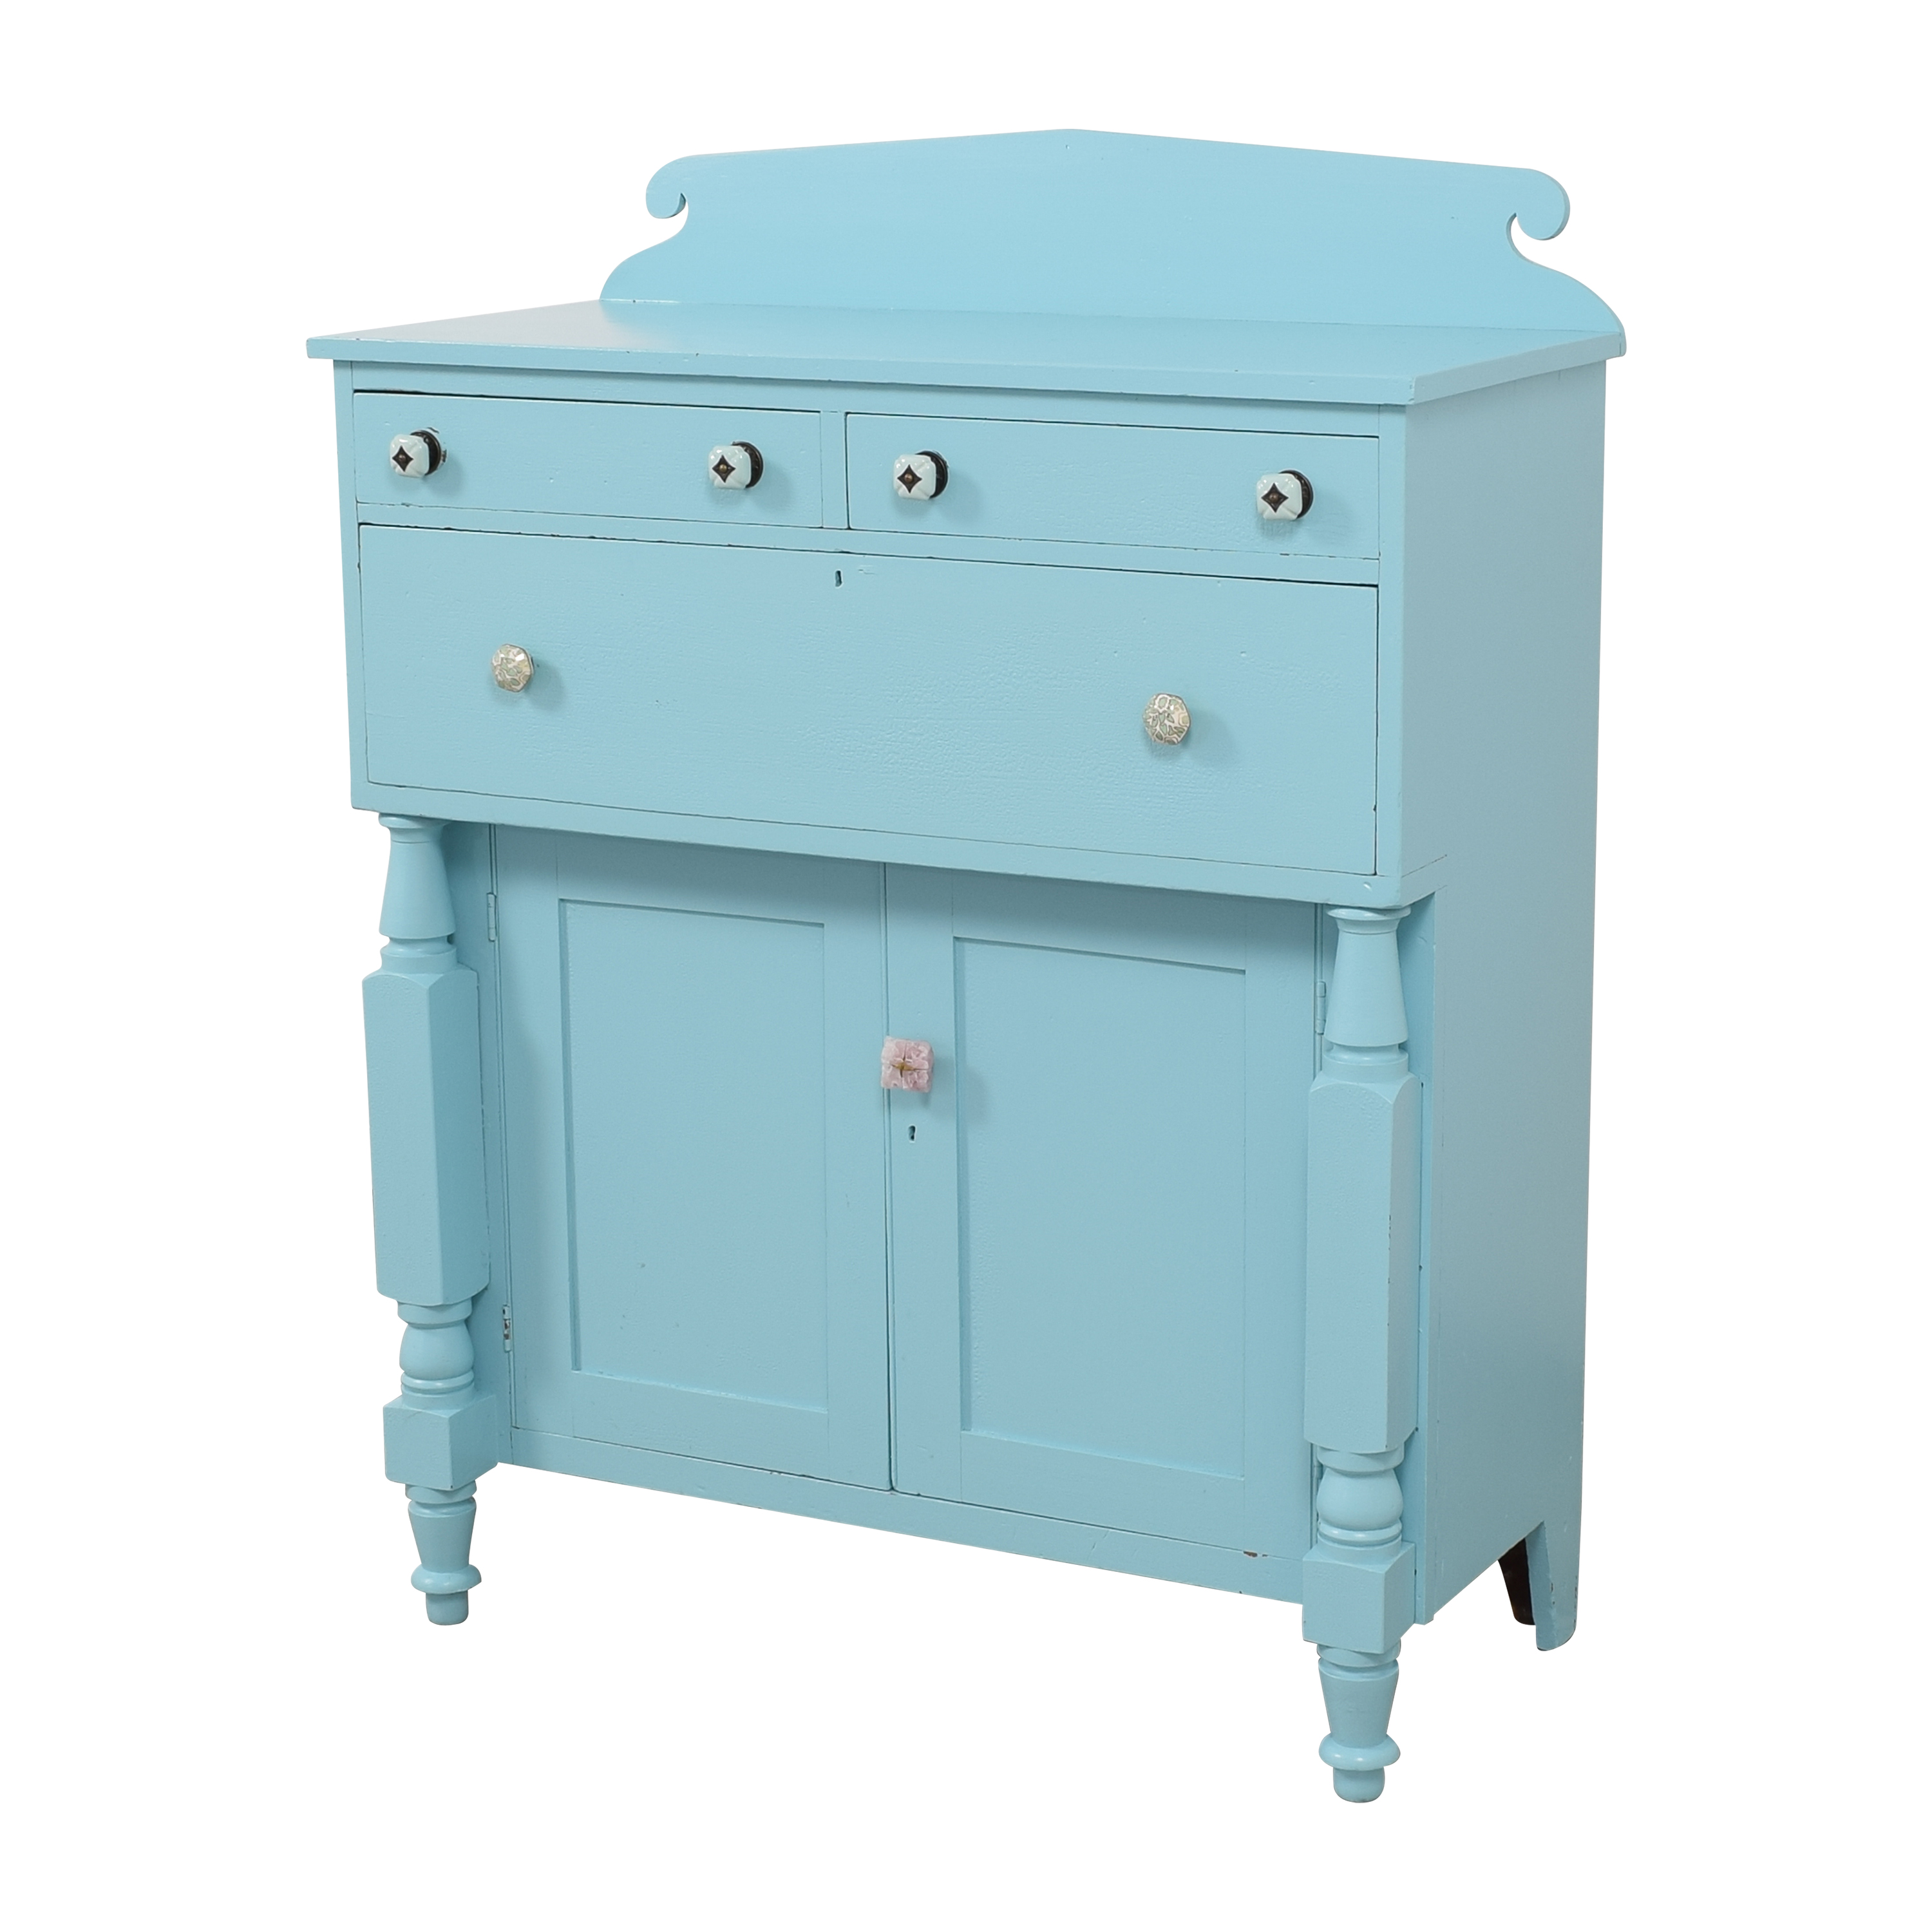 Painted Two Door Storage Cabinet Cabinets & Sideboards